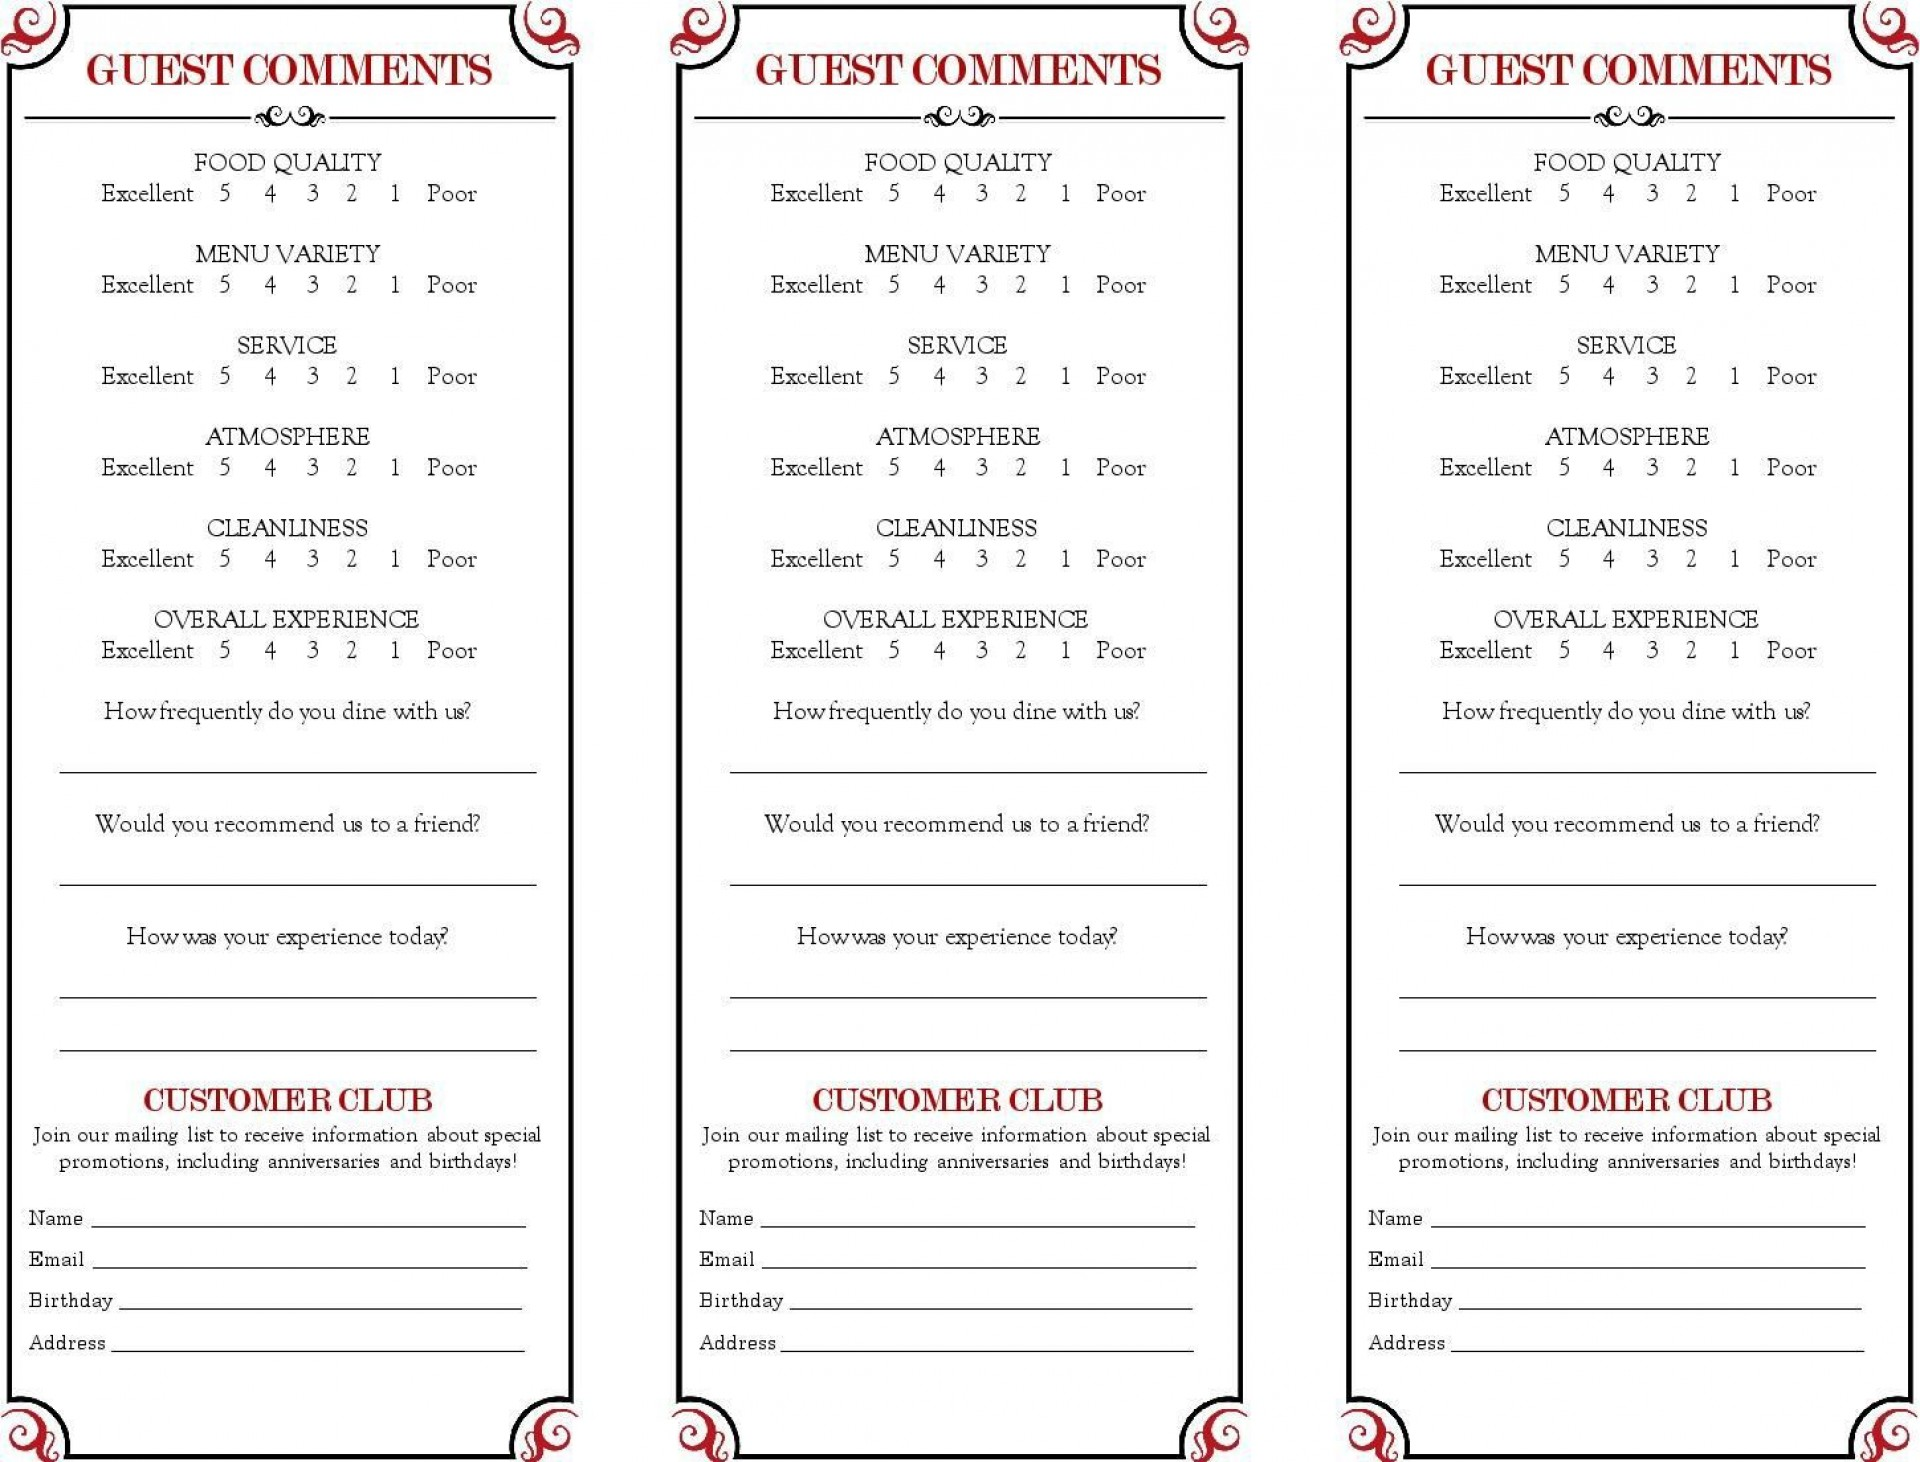 009 Awesome Restaurant Customer Comment Card Template Example  For Word Free1920